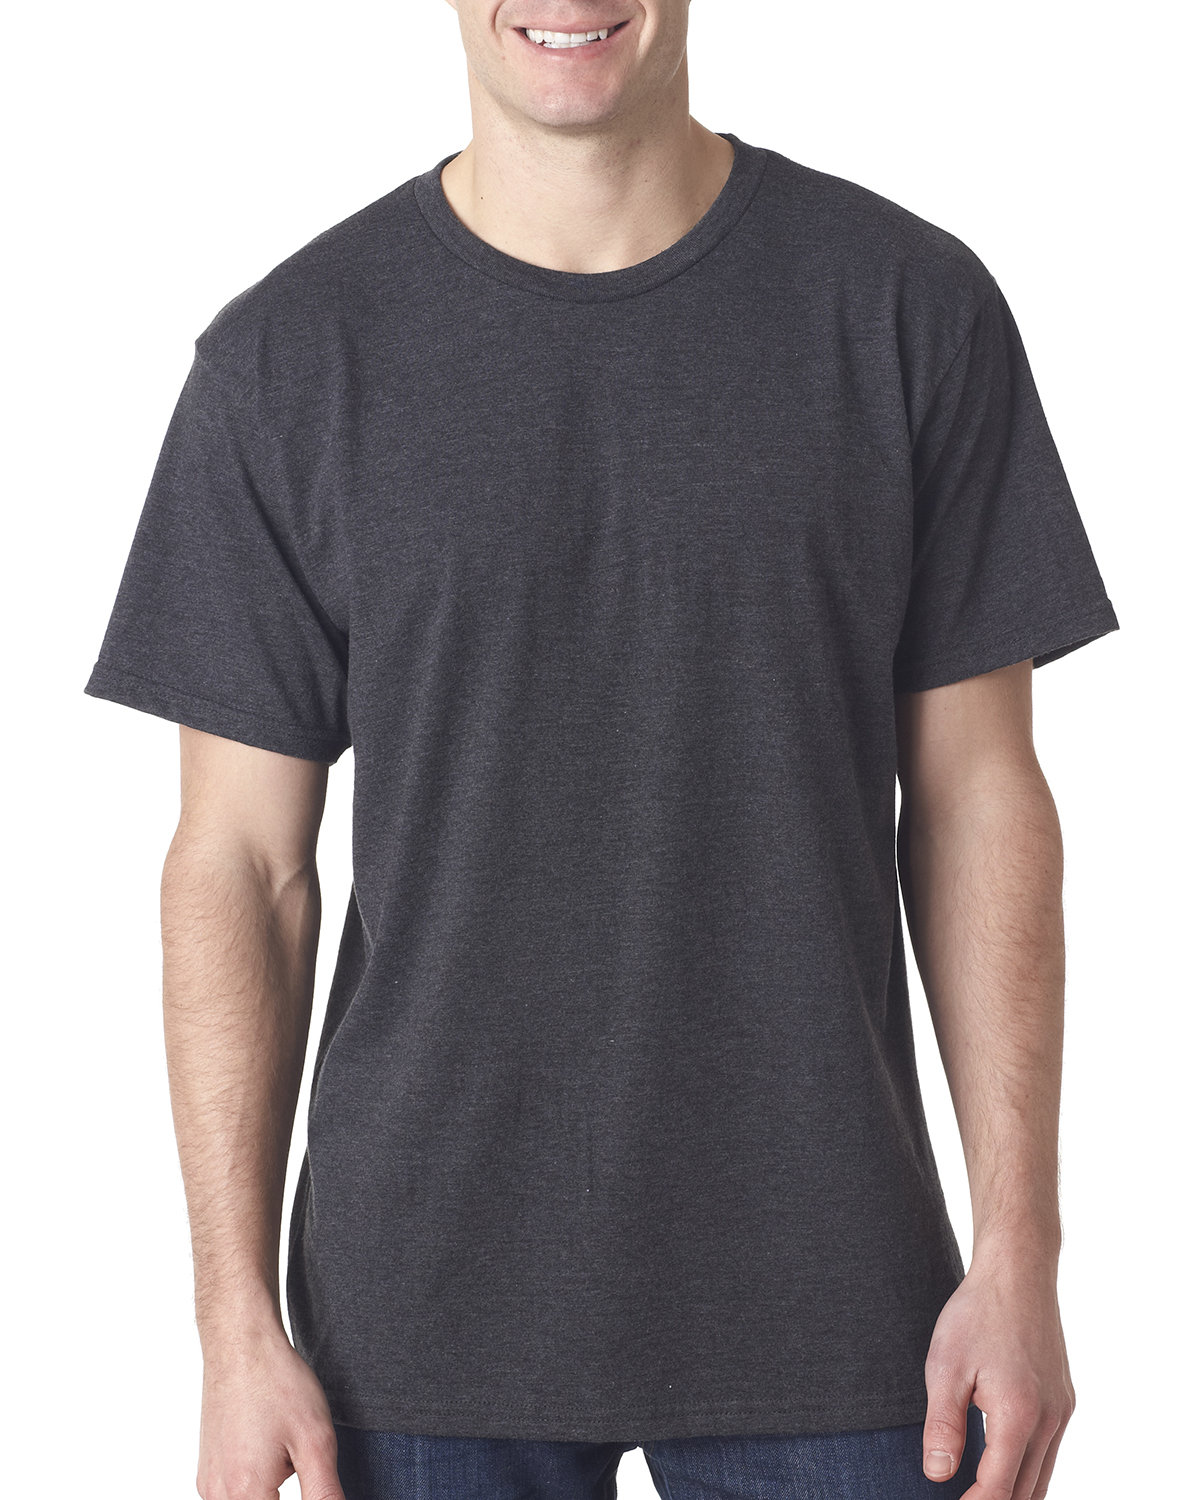 Bayside Adult Adult Heather Ring-Spun Jersey Tee HEATHER CHARCOAL